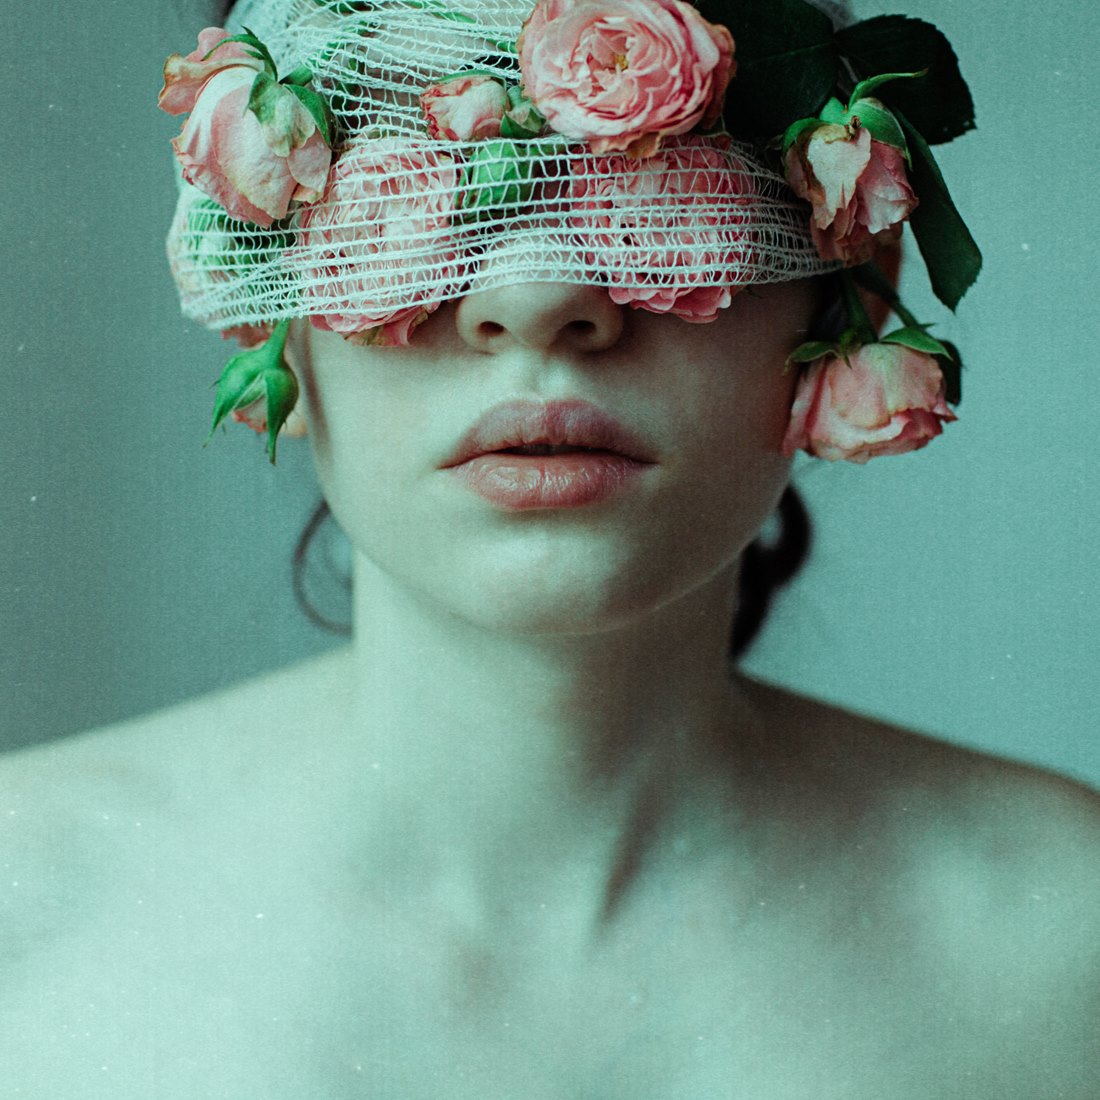 Laura Makabresku - Mystic photography - The Suffering